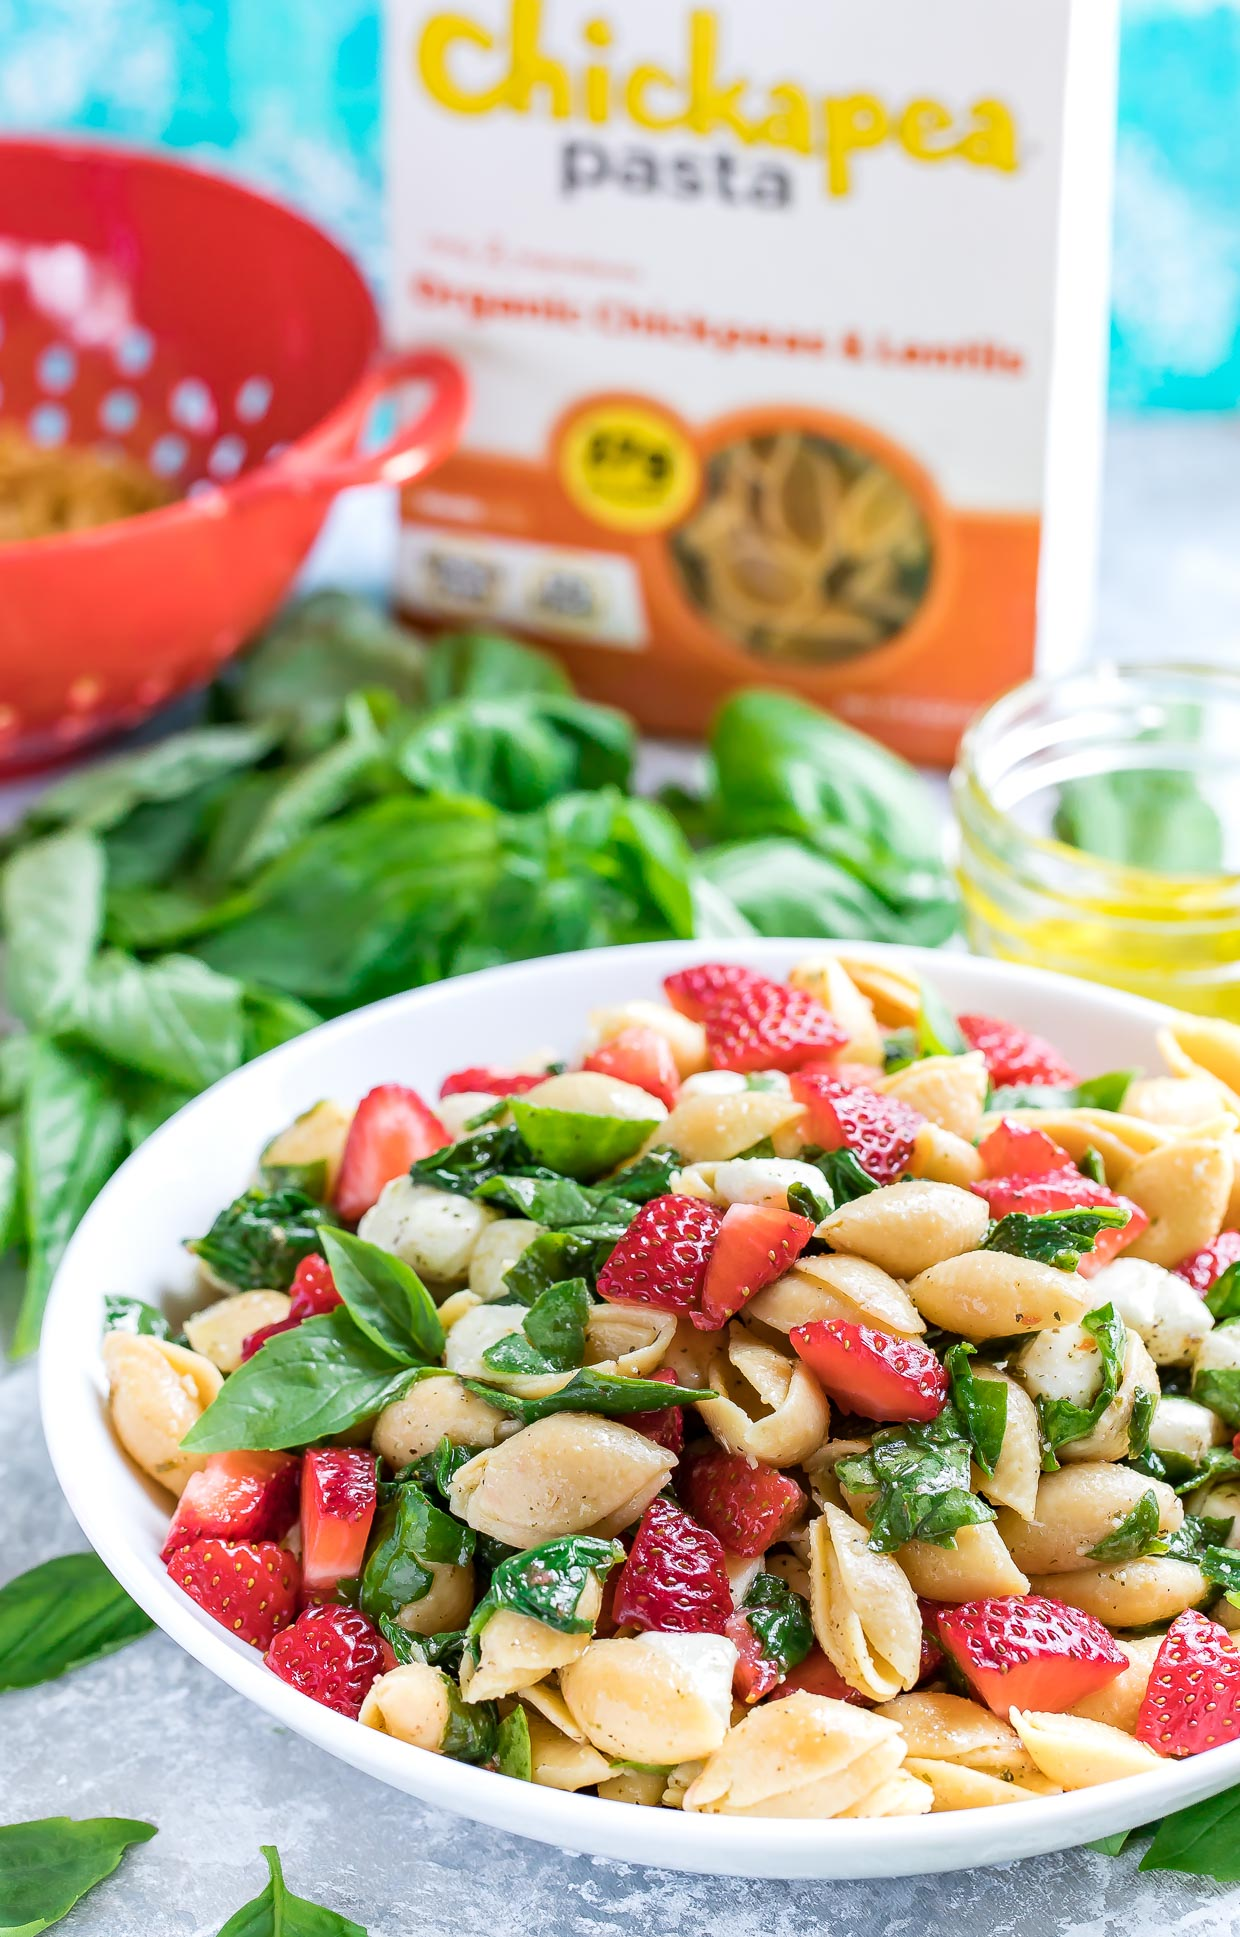 Pasta Salad Bowl with Basil and Dressing